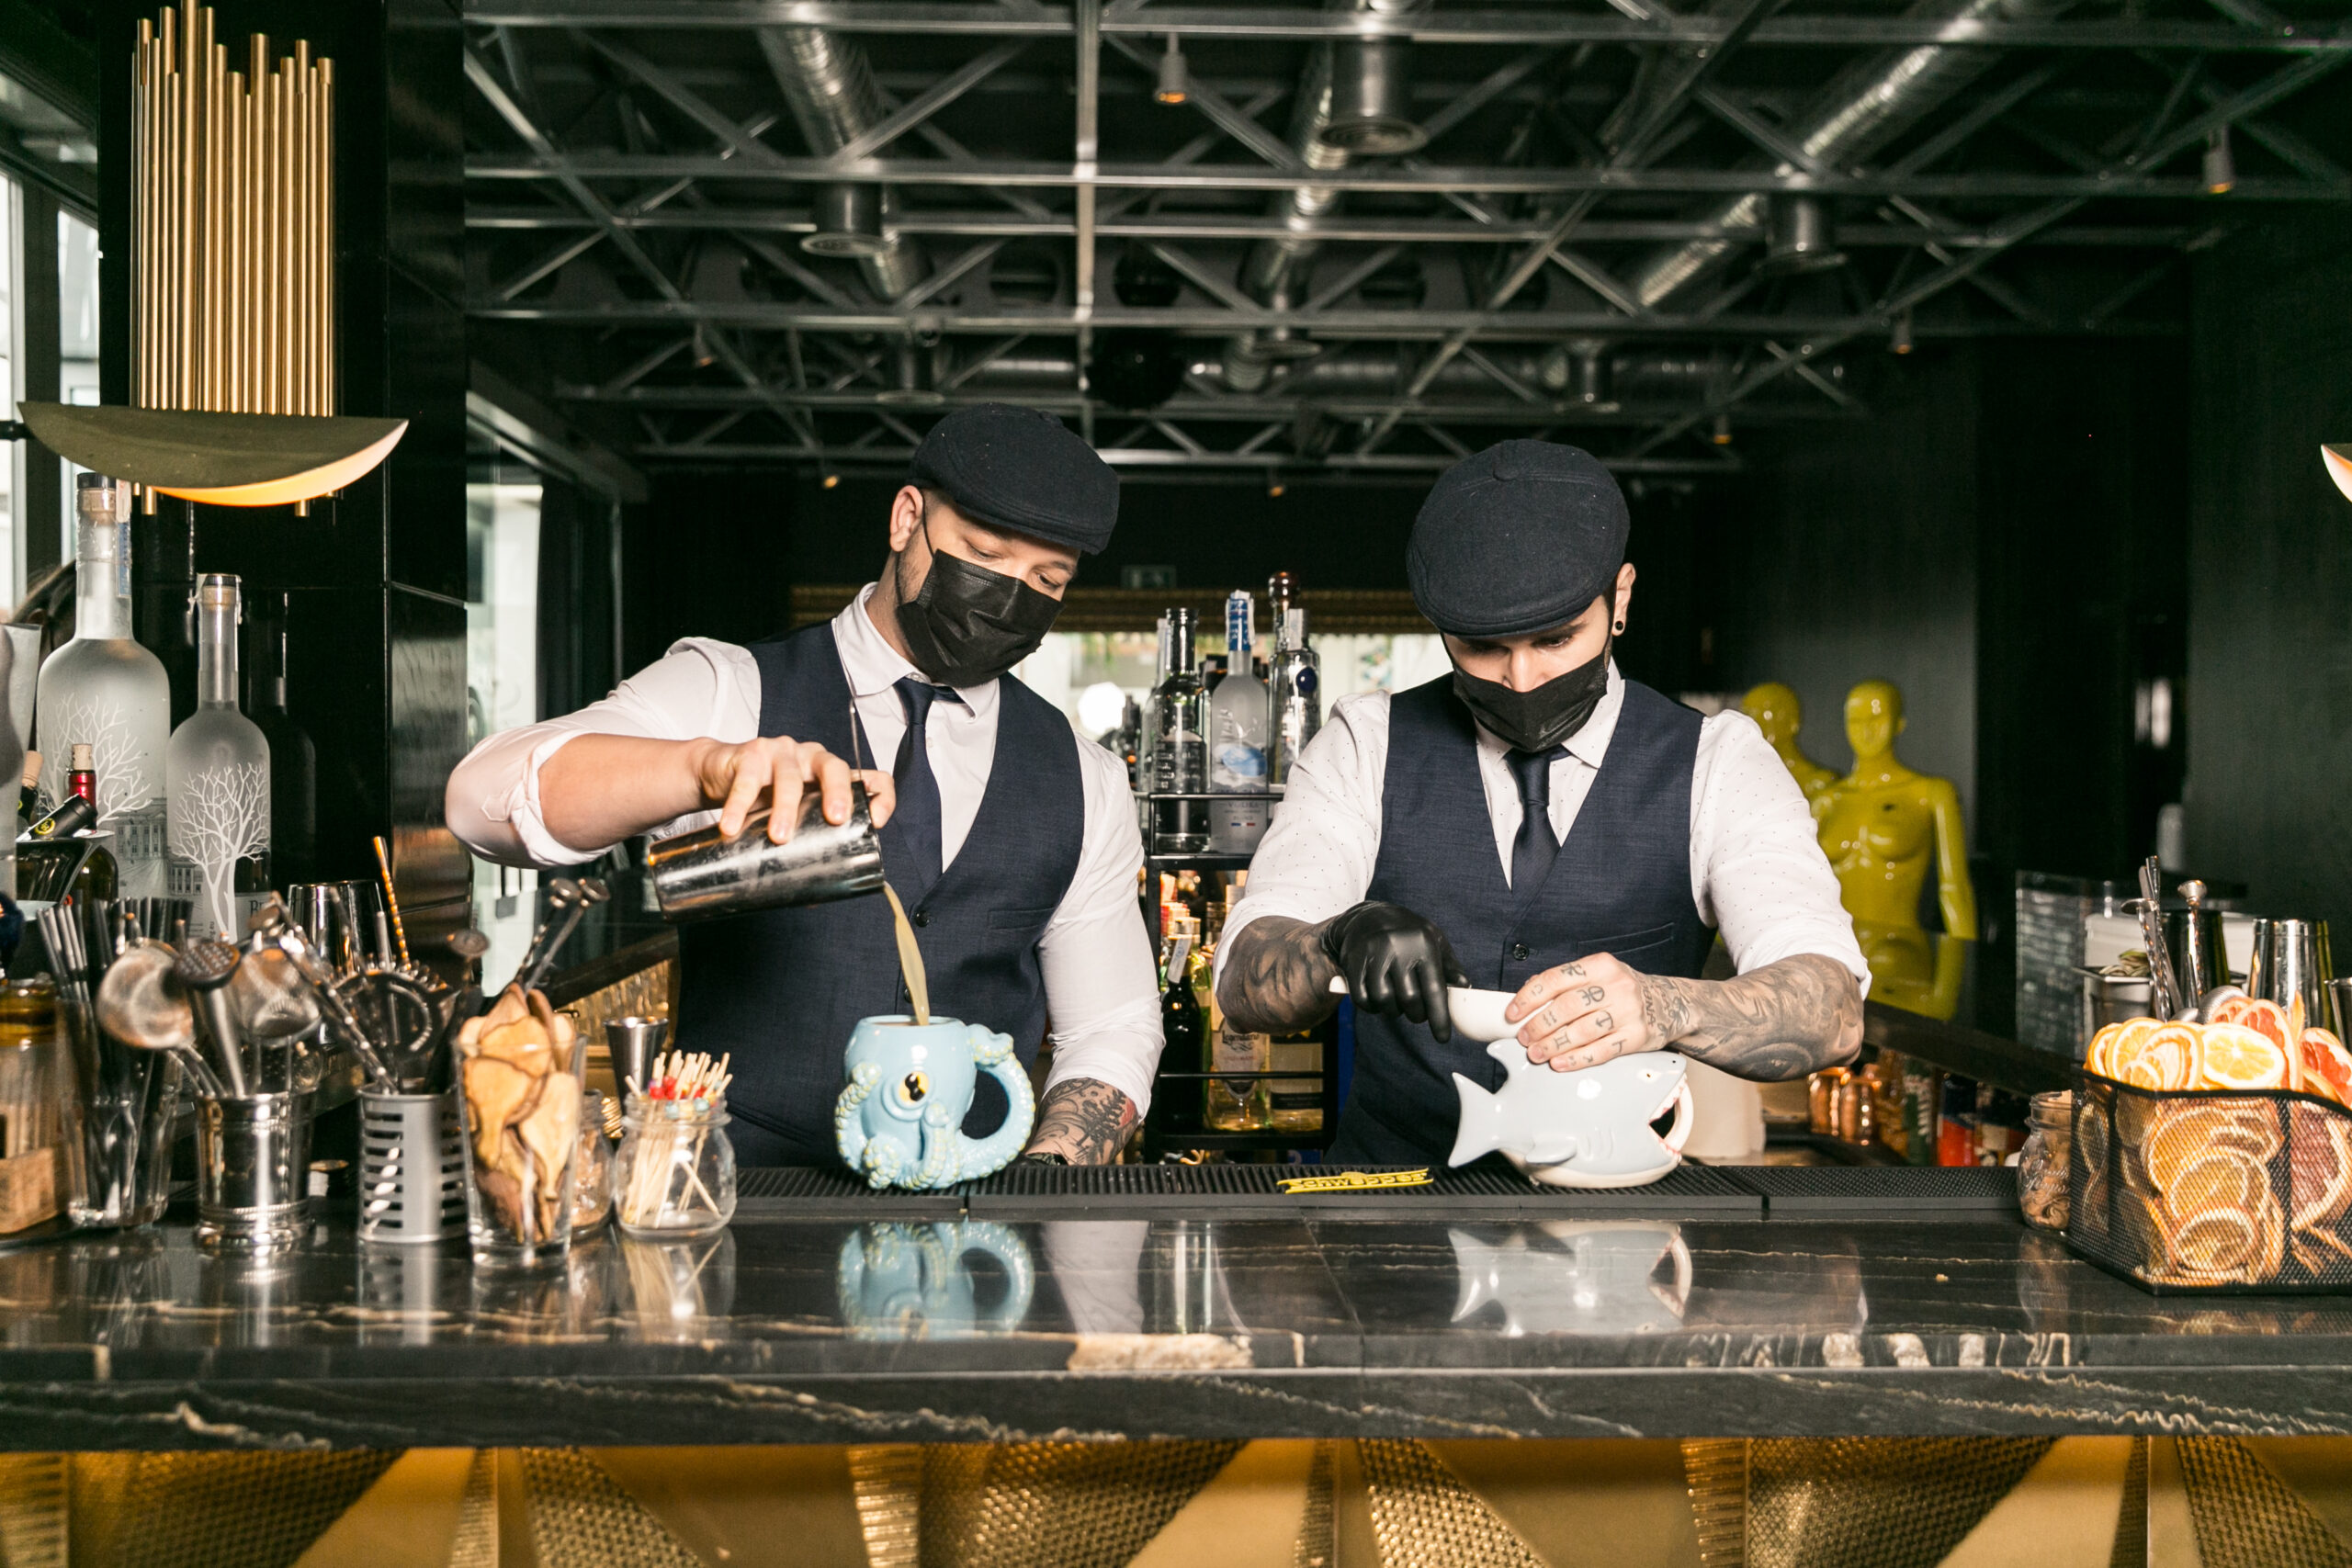 Get a surprise from our bartenders Johnat&John' s and their boldest and most unique cocktails